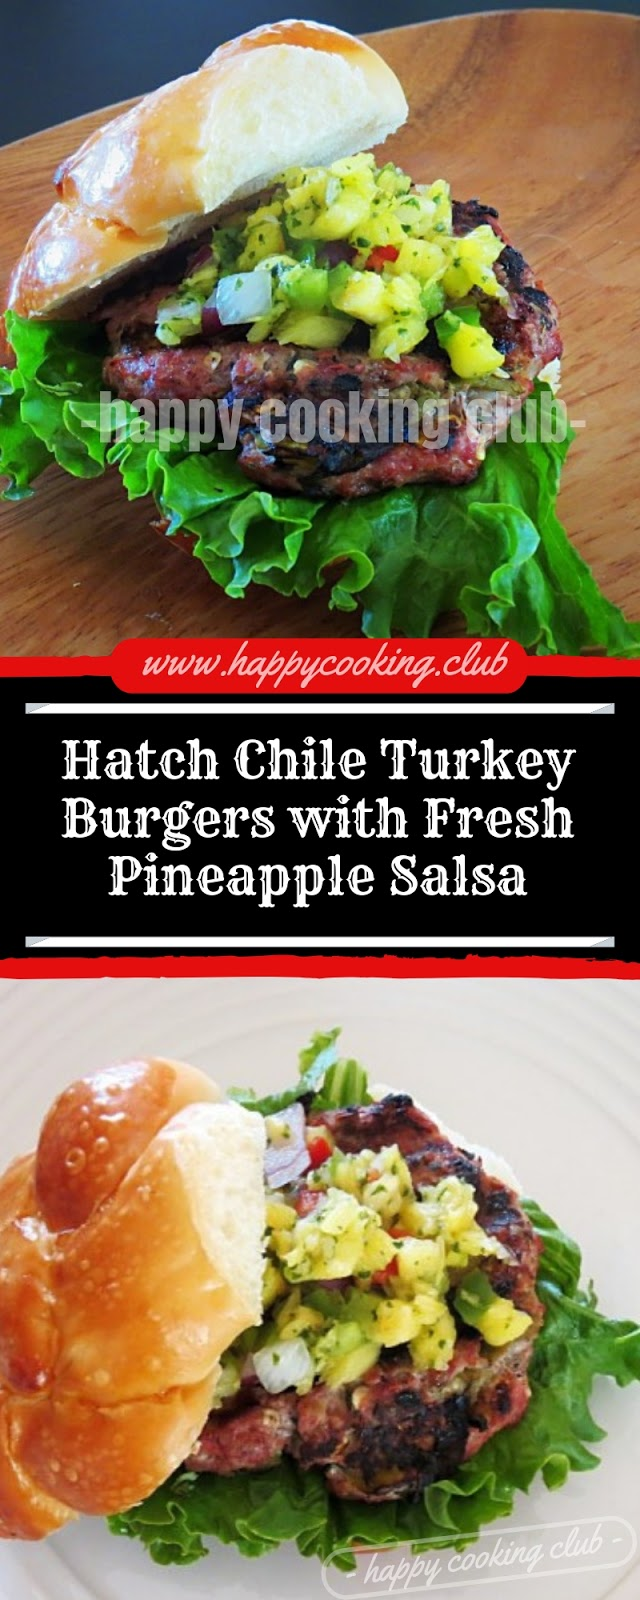 Hatch Chile Turkey Burgers with Fresh Pineapple Salsa